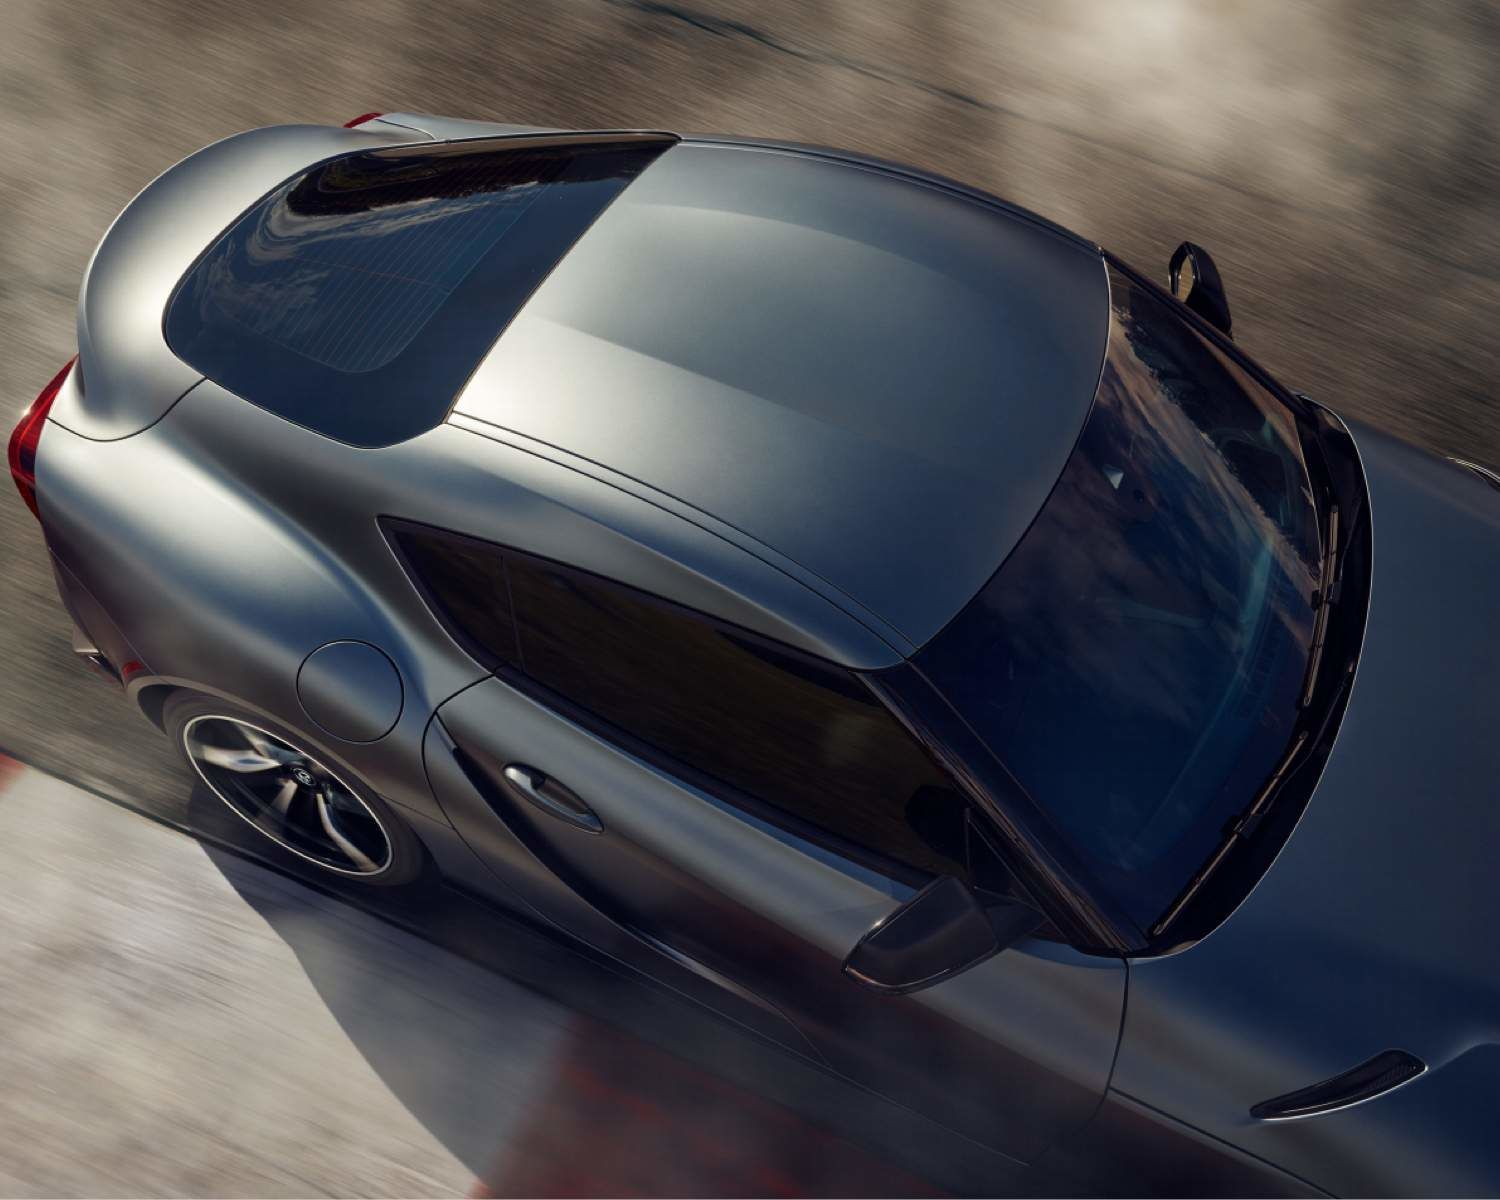 2021 GR Supra 3.0 shown in Phantom. Premium paint colour shown, available at additional cost.